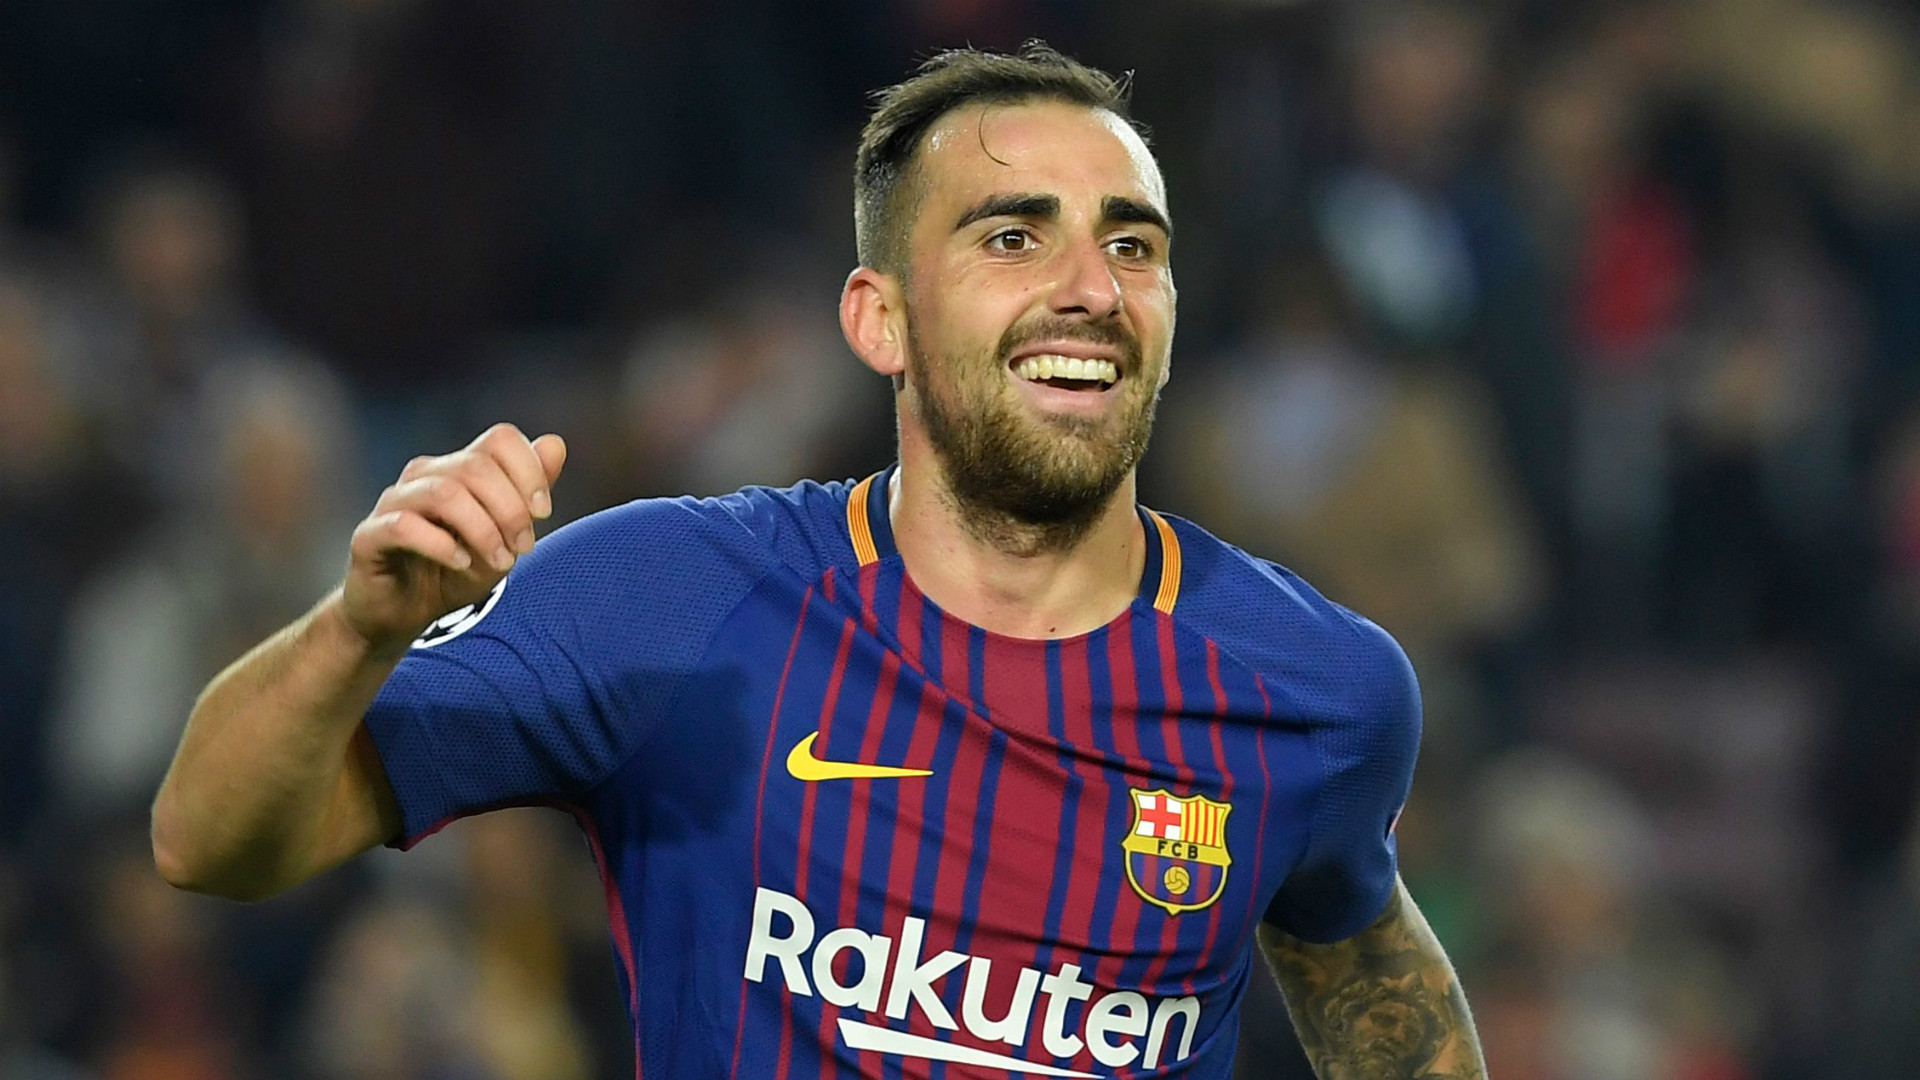 Borussia Dortmund sign Paco Alcacer on loan from Barcelona